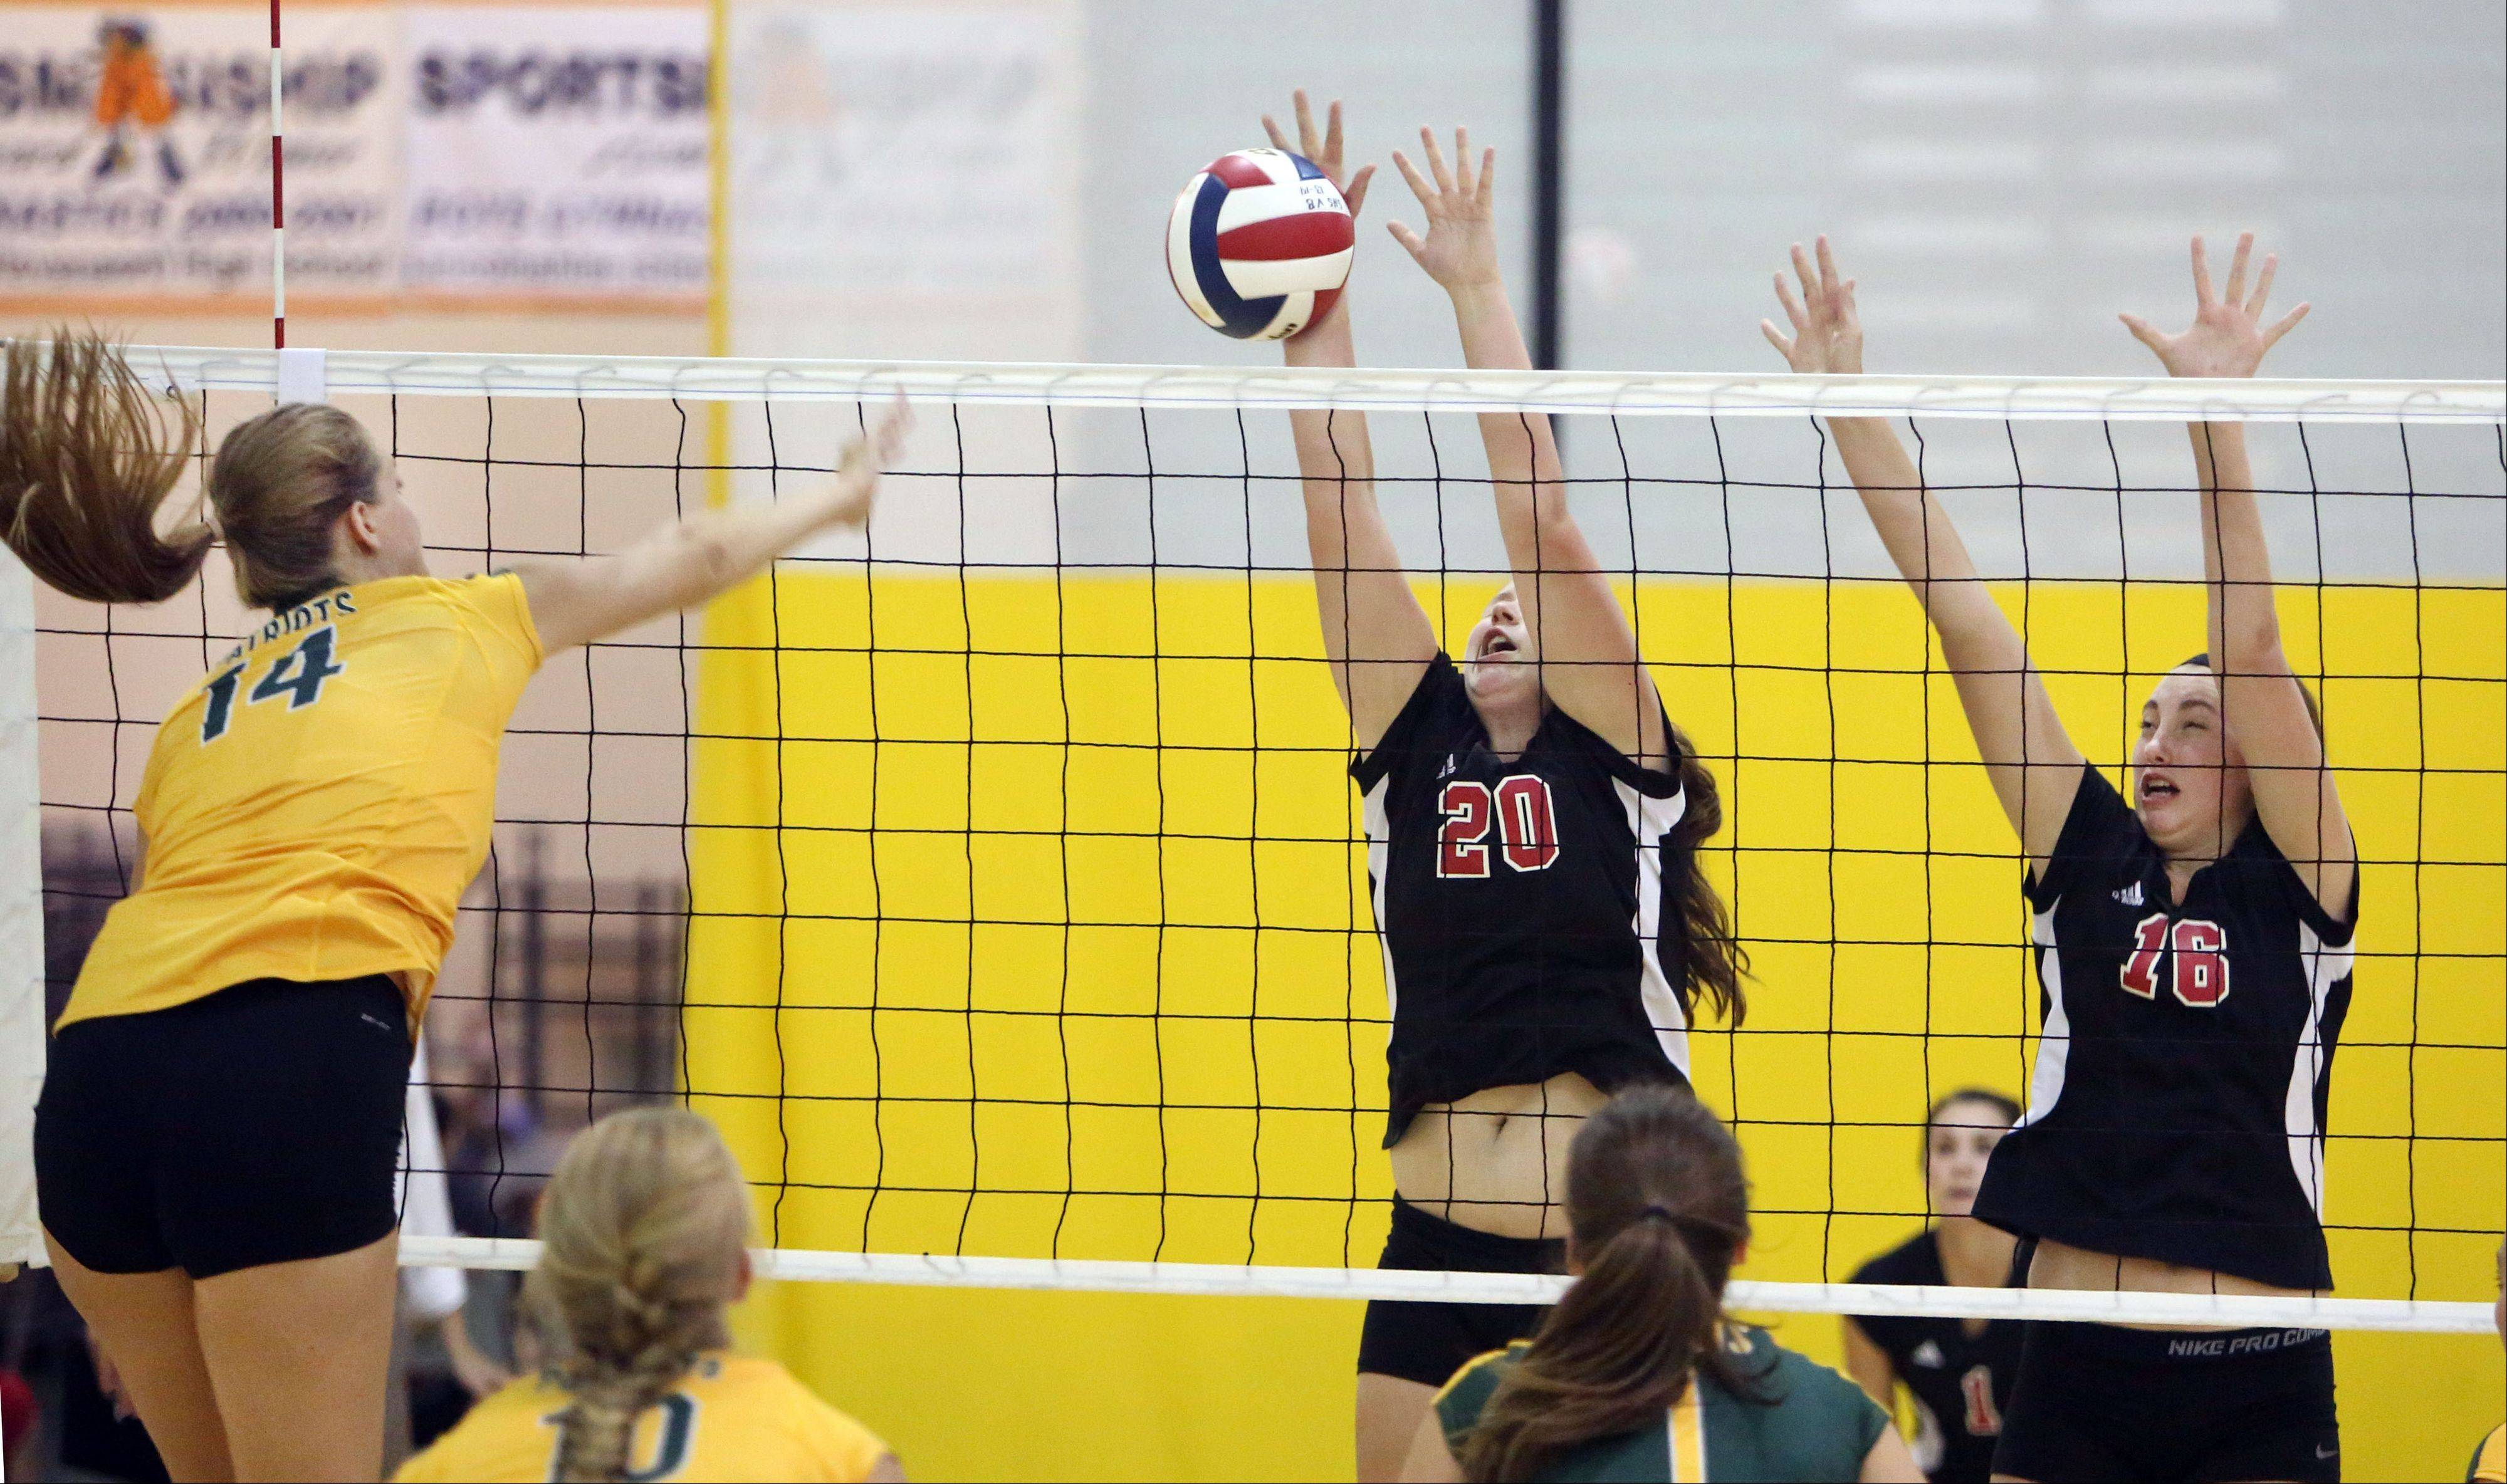 Stevenson's Kara Maleski, left, spikes one at Barrington's Sarah Berggren and Megan Talbot on Tuesday night at Stevenson.